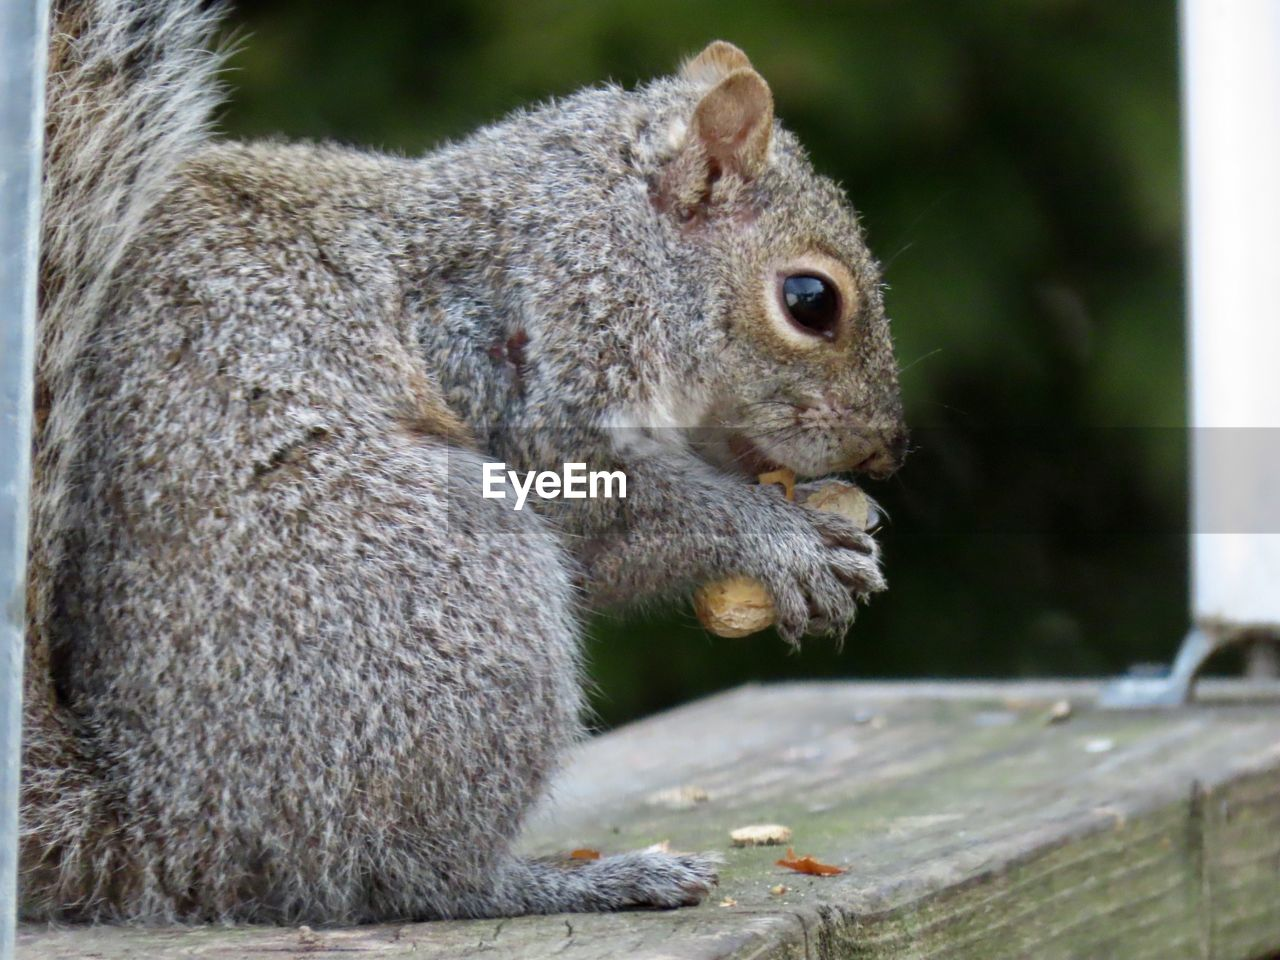 animal themes, mammal, animal, animal wildlife, animals in the wild, one animal, rodent, squirrel, close-up, focus on foreground, eating, no people, vertebrate, day, food, nature, outdoors, food and drink, side view, nut, whisker